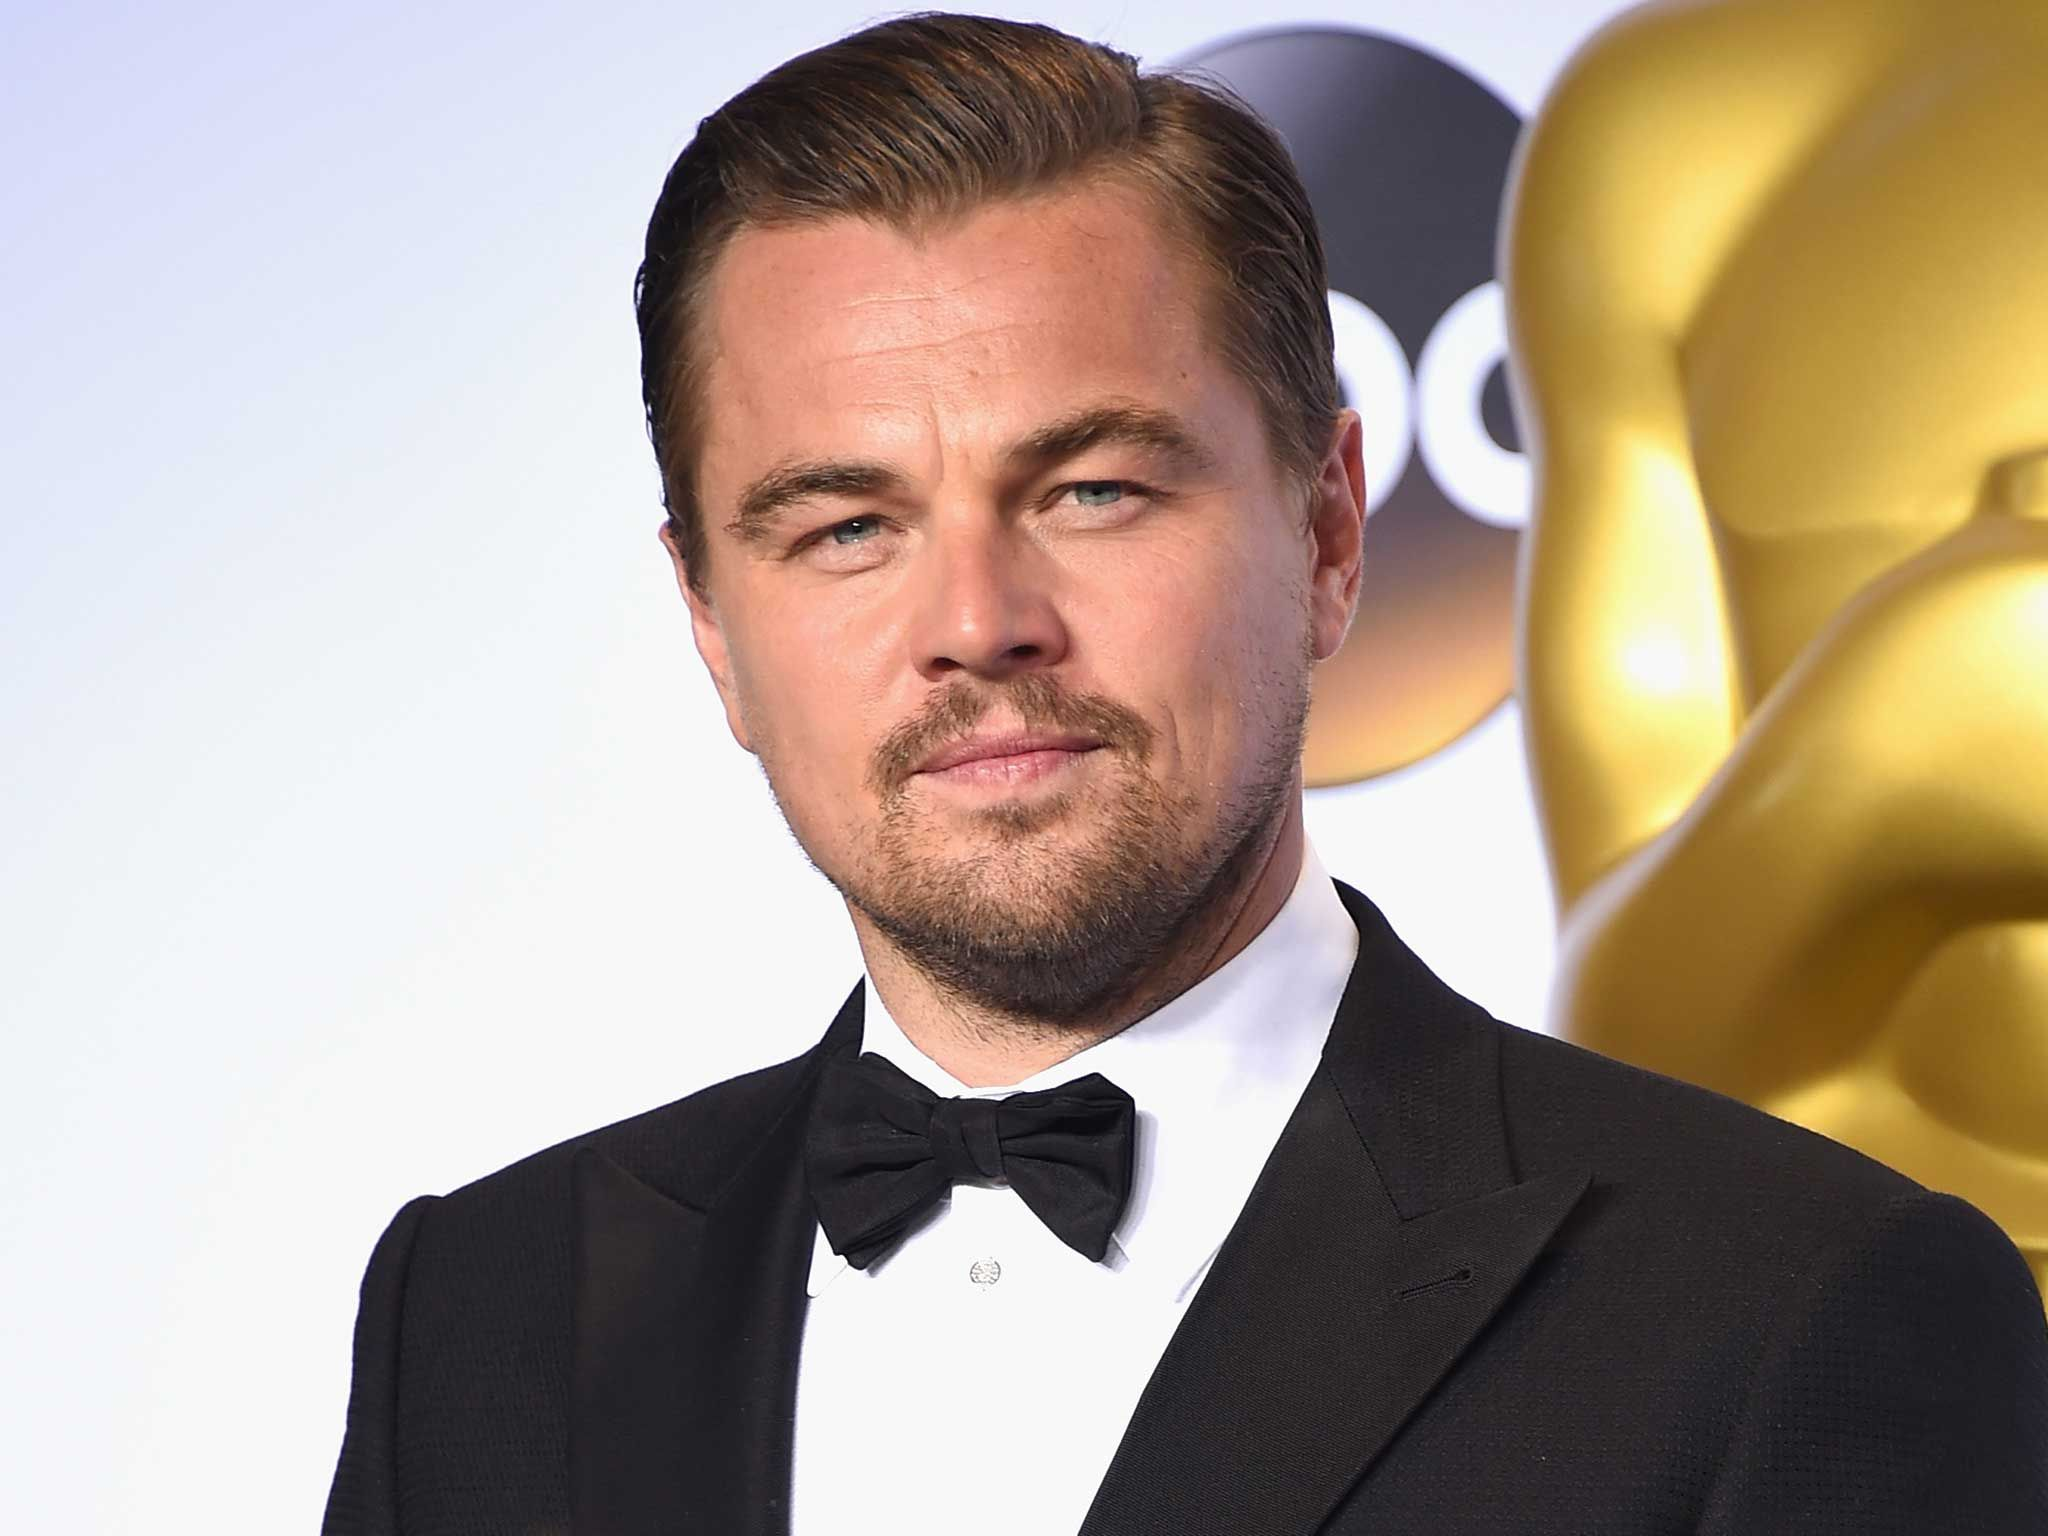 Oscar-winner Leonardo DiCaprio flew an additional 8,000 miles from France to New York and back to accept an award on climate change. The actor suffered a massive blow on his carbon footprint when he took one jet from the Cannes Film Festival to New York City to attend the green awards ceremony, before hopping on board a second jet for a fund-raising event back in Cannes the following evening.